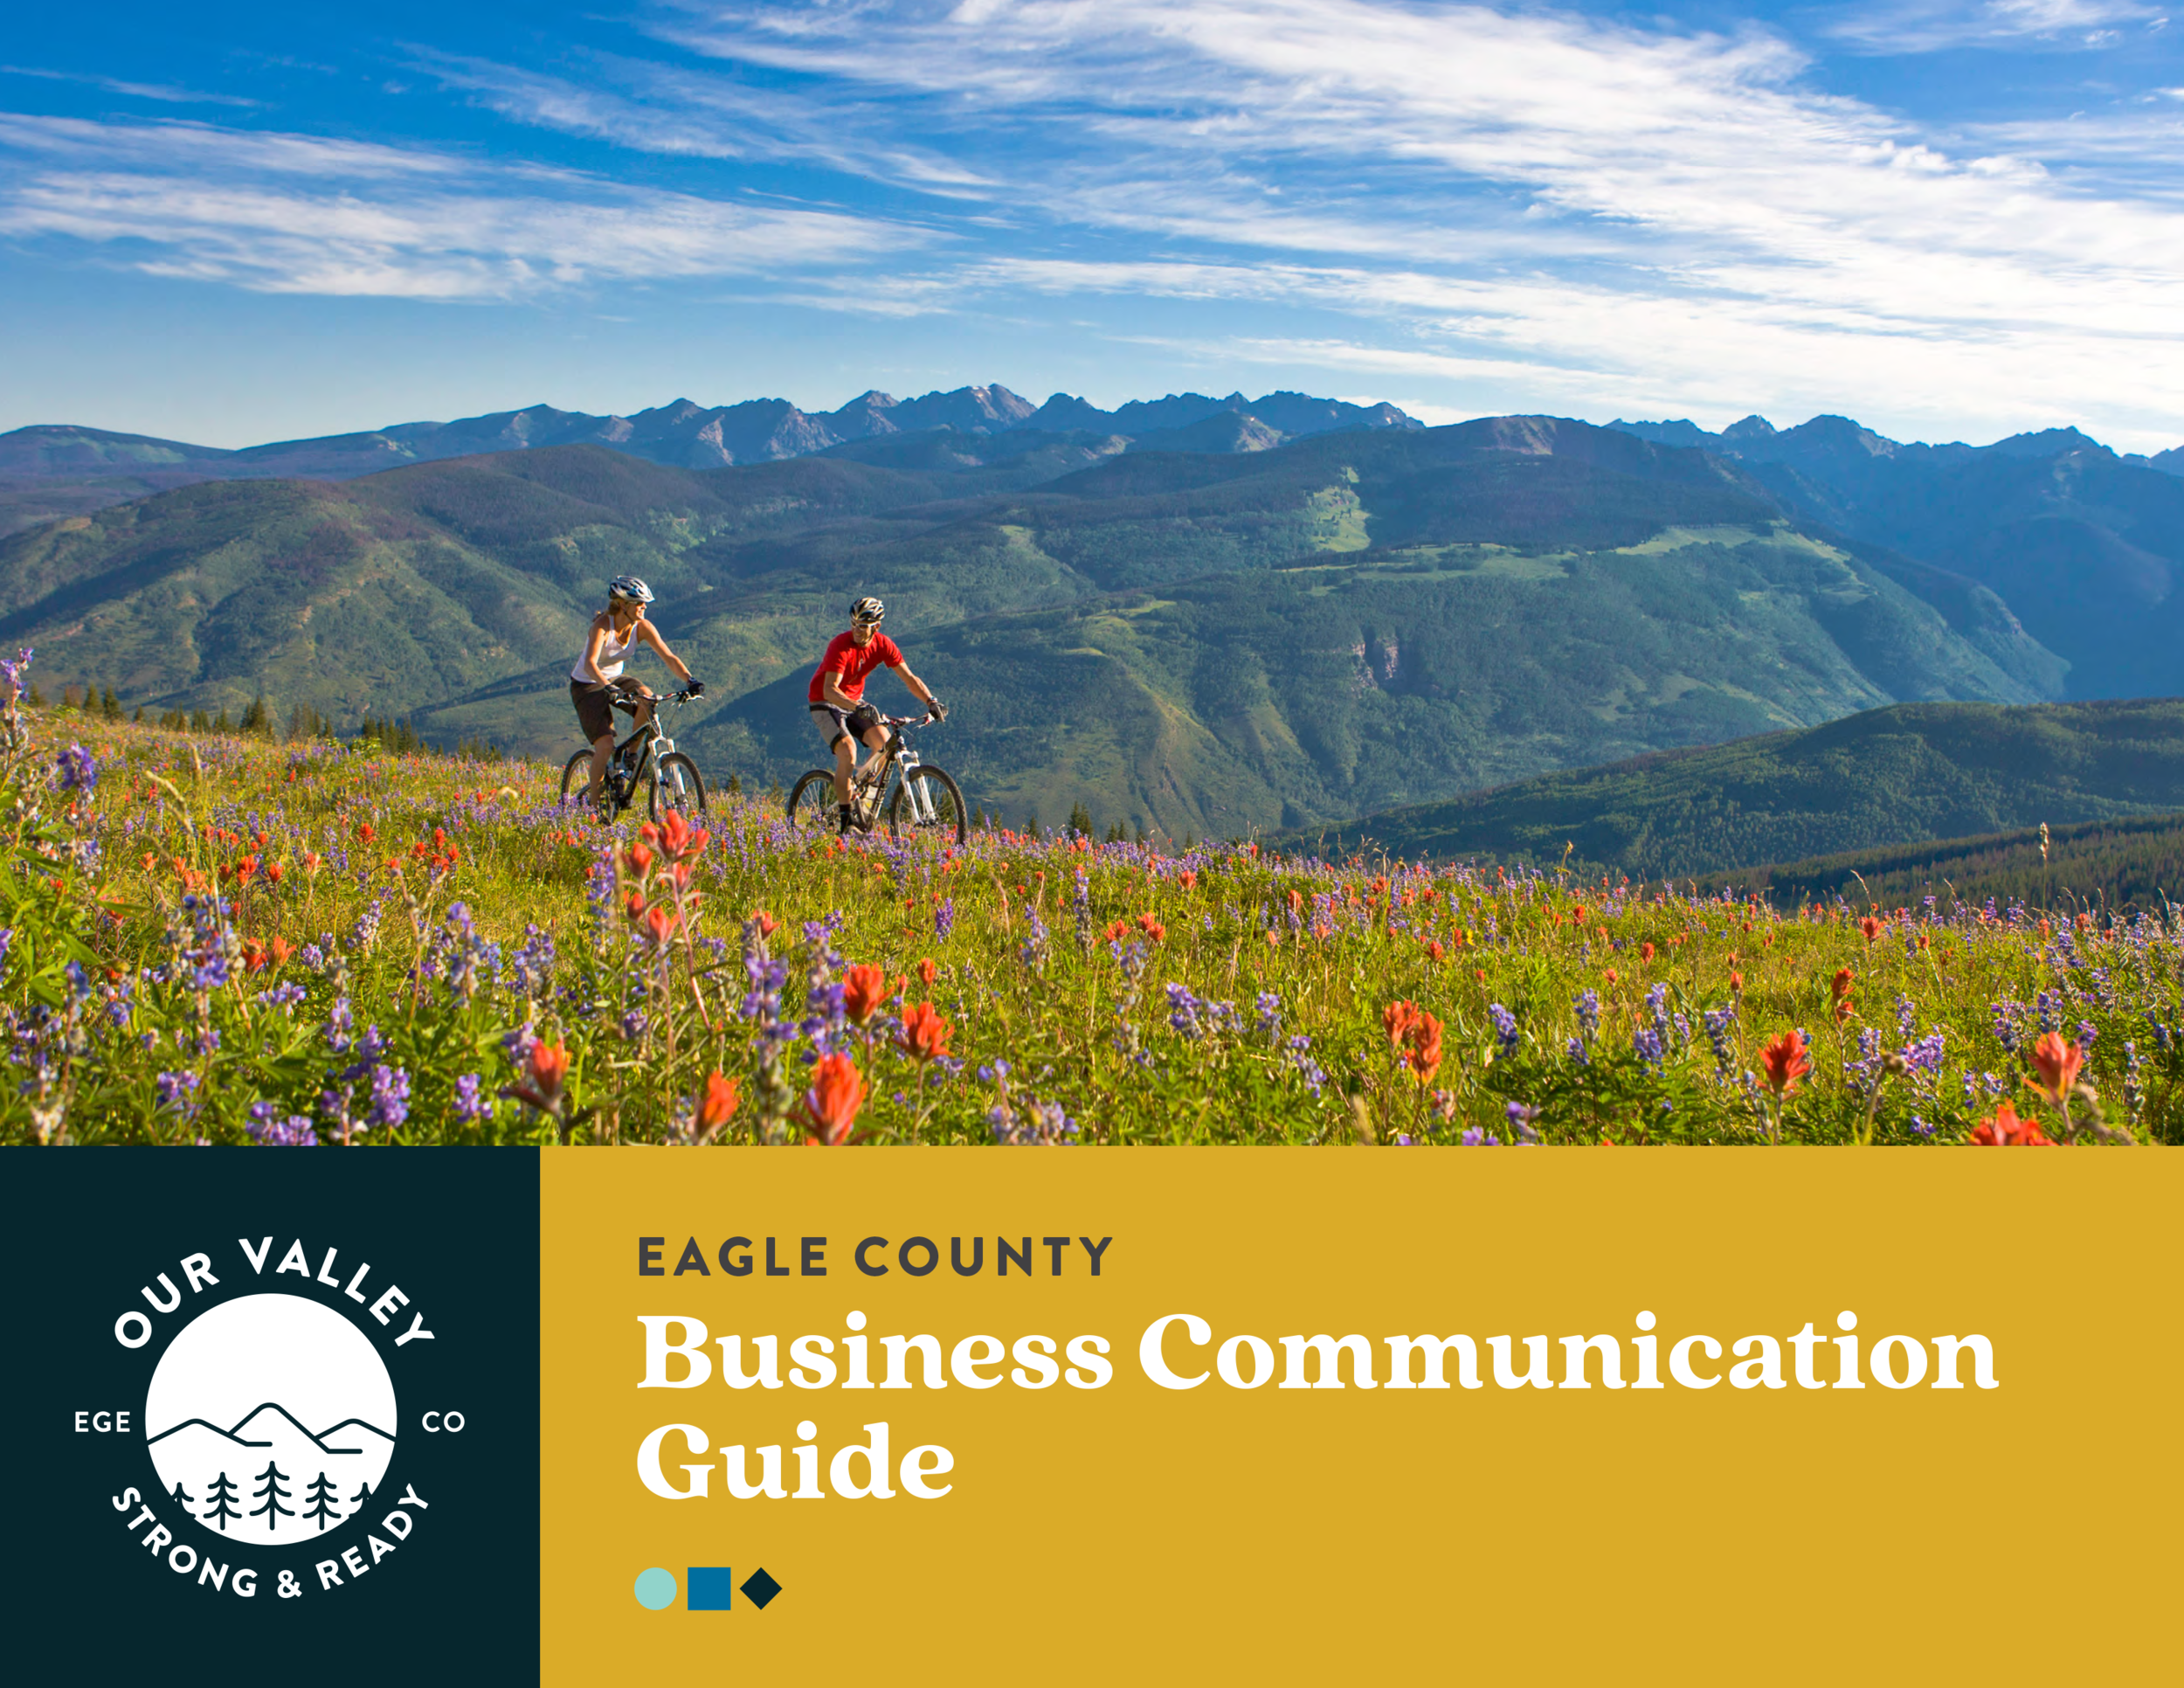 Eagle County Business Communication Guide cover